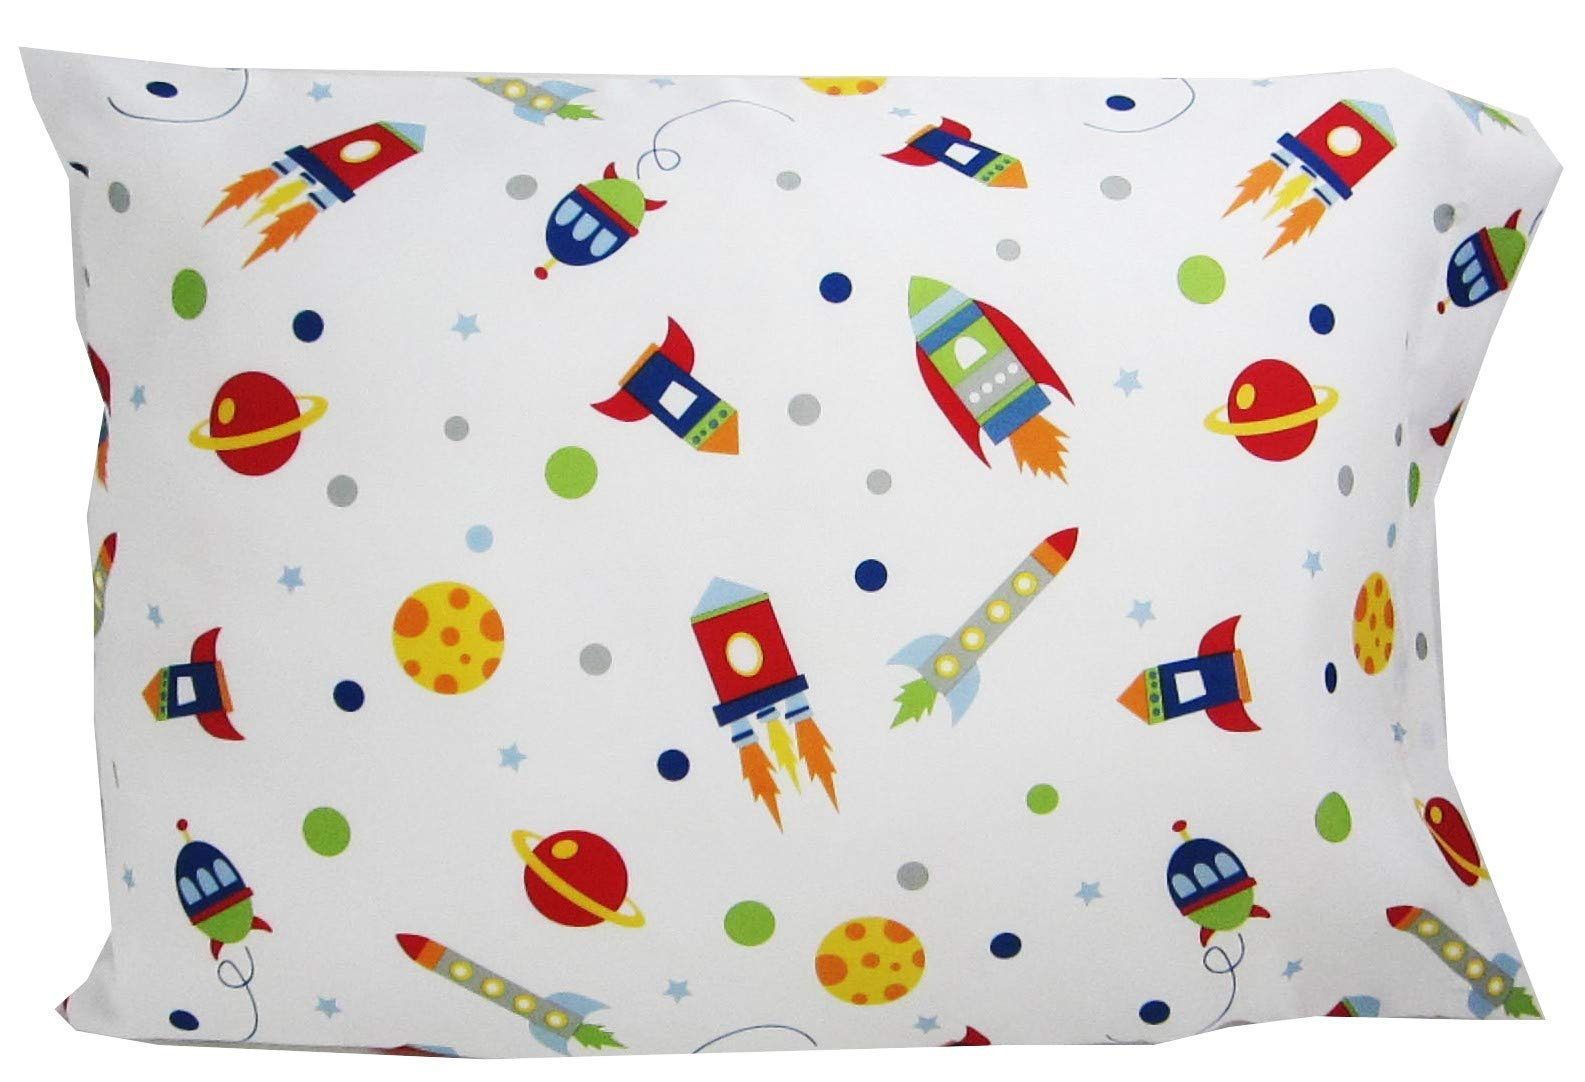 Toddler Pillowcase Kids Space Size: 16x20 Fits Size 14x19 Pillow Boys Girls Kids Bedding